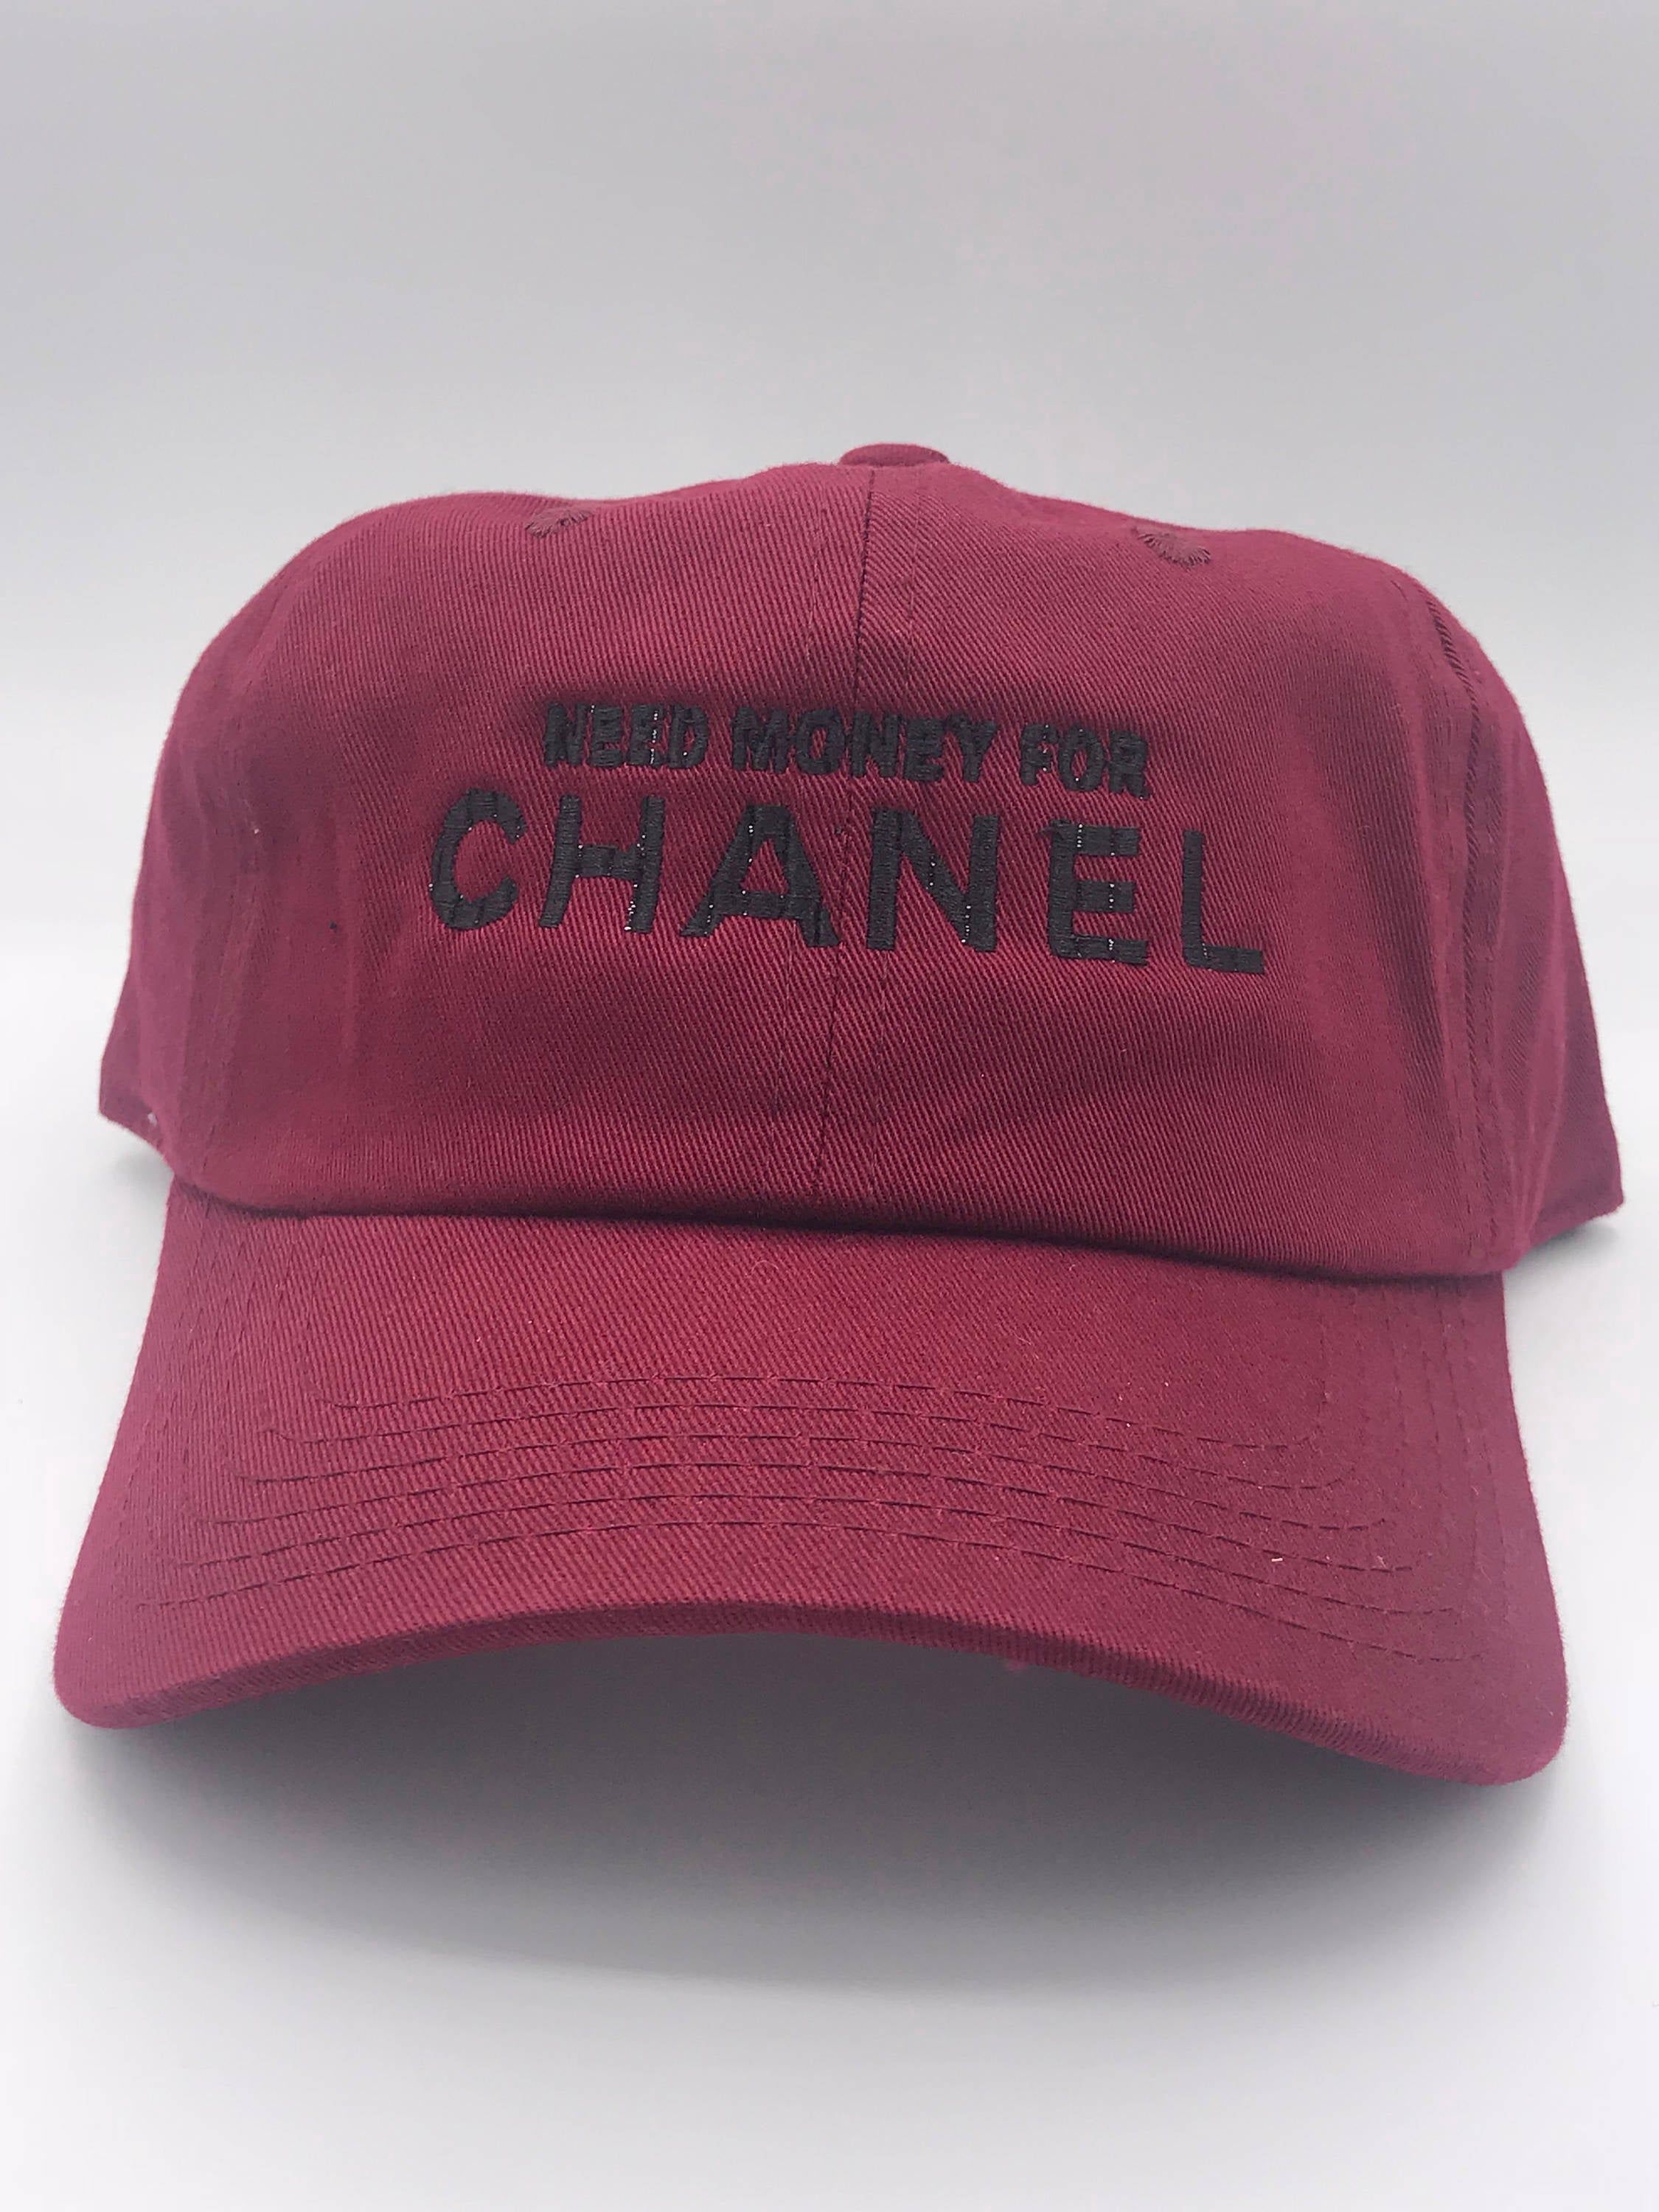 Excited To Share The Latest Addition To My Etsy Shop Money For Channel Parody Dad Cap Hat Https Etsy Me 385vzl0 Accessories In 2020 Dad Caps Caps Hats Best Caps